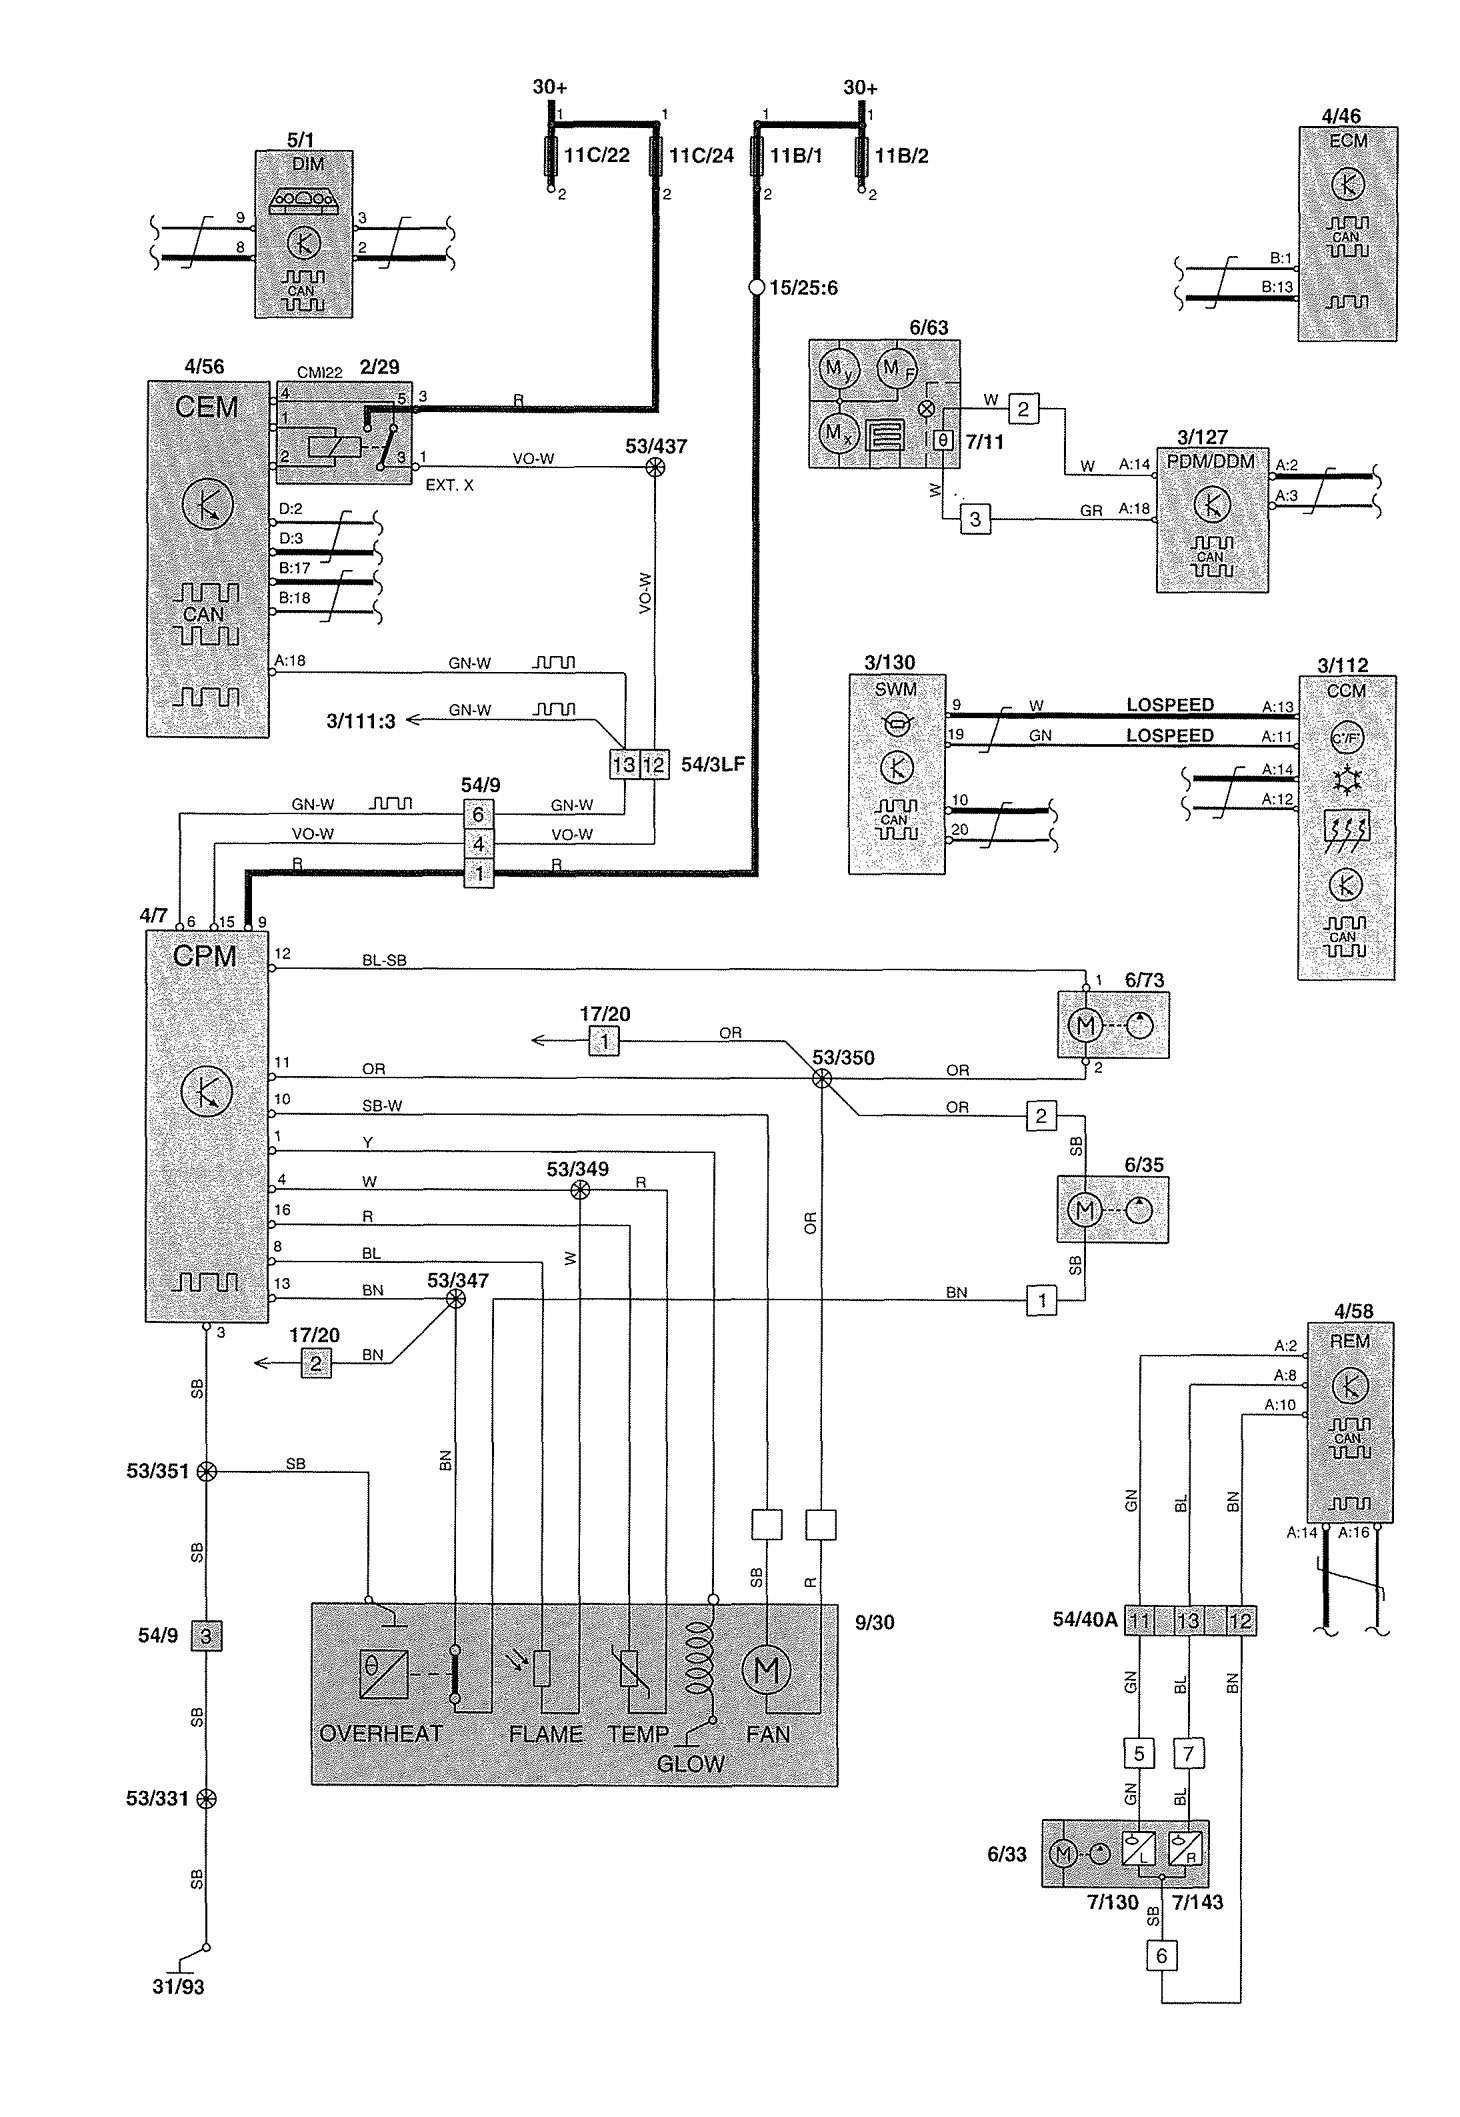 Volvo S70 Wiring Diagram Pdf Diagrams 1999 Radio For V70 Auto 1998 Engine